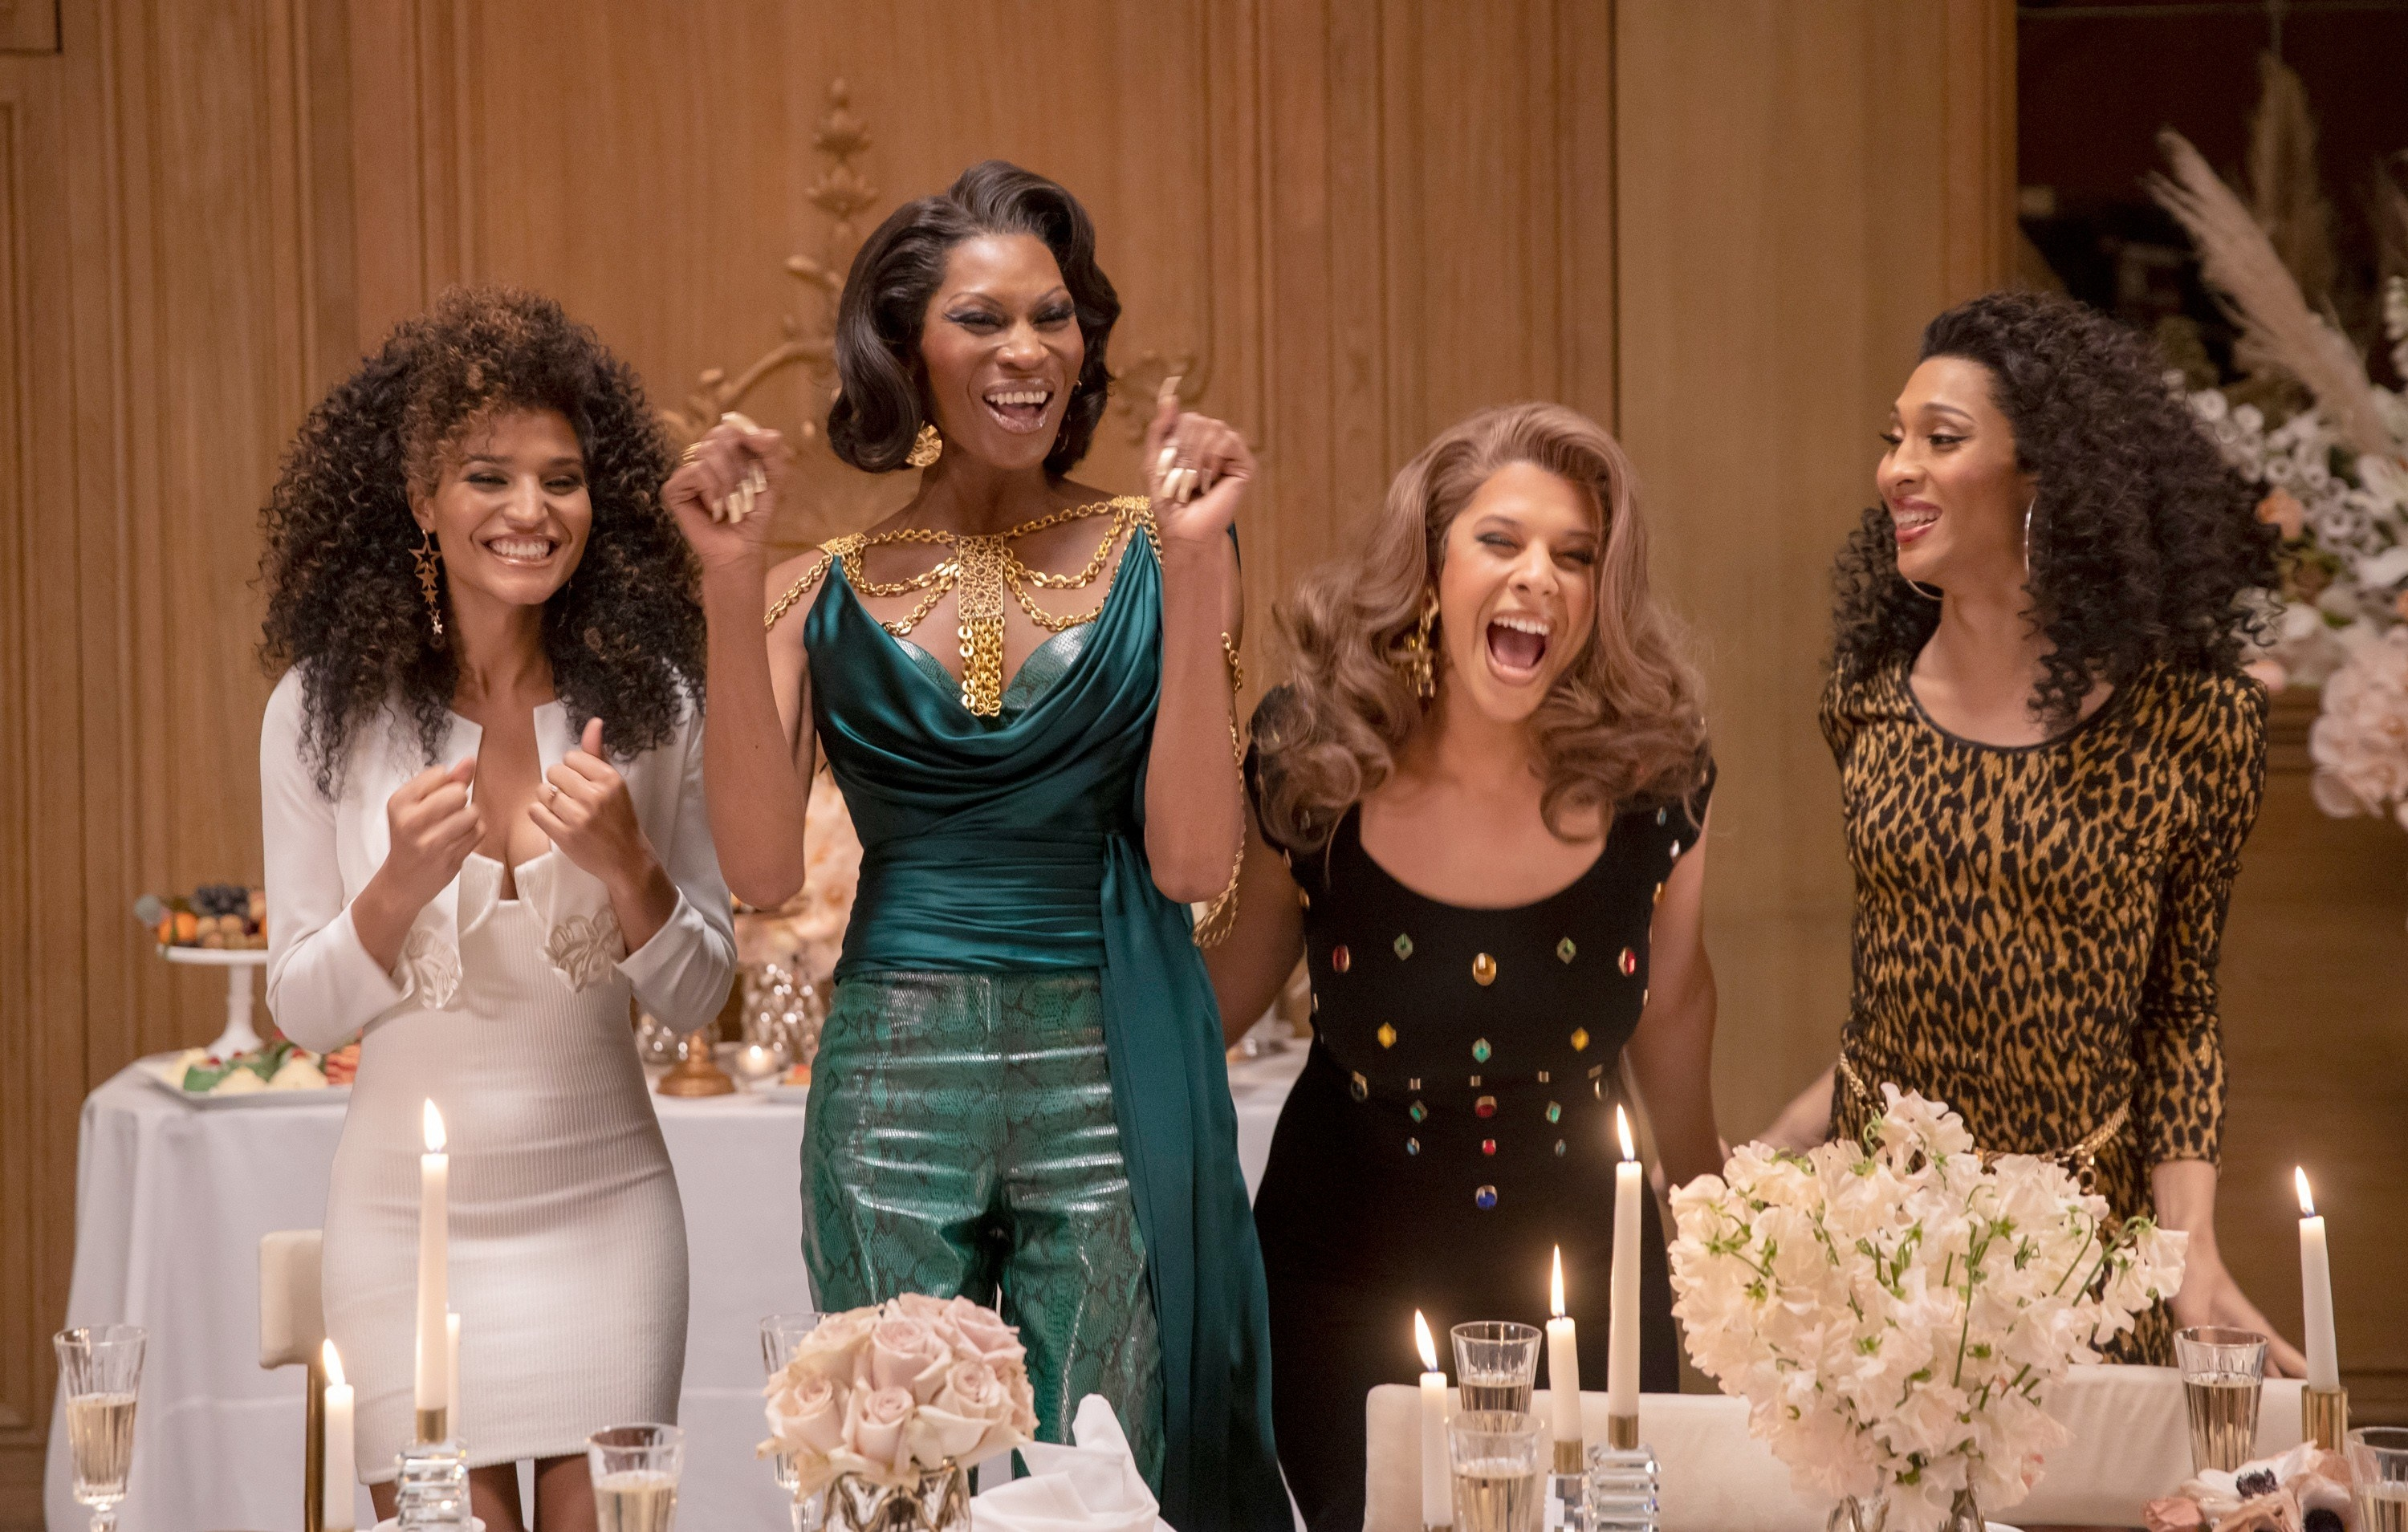 The cast of Pose at a candlelit dinner in a scene from Pose